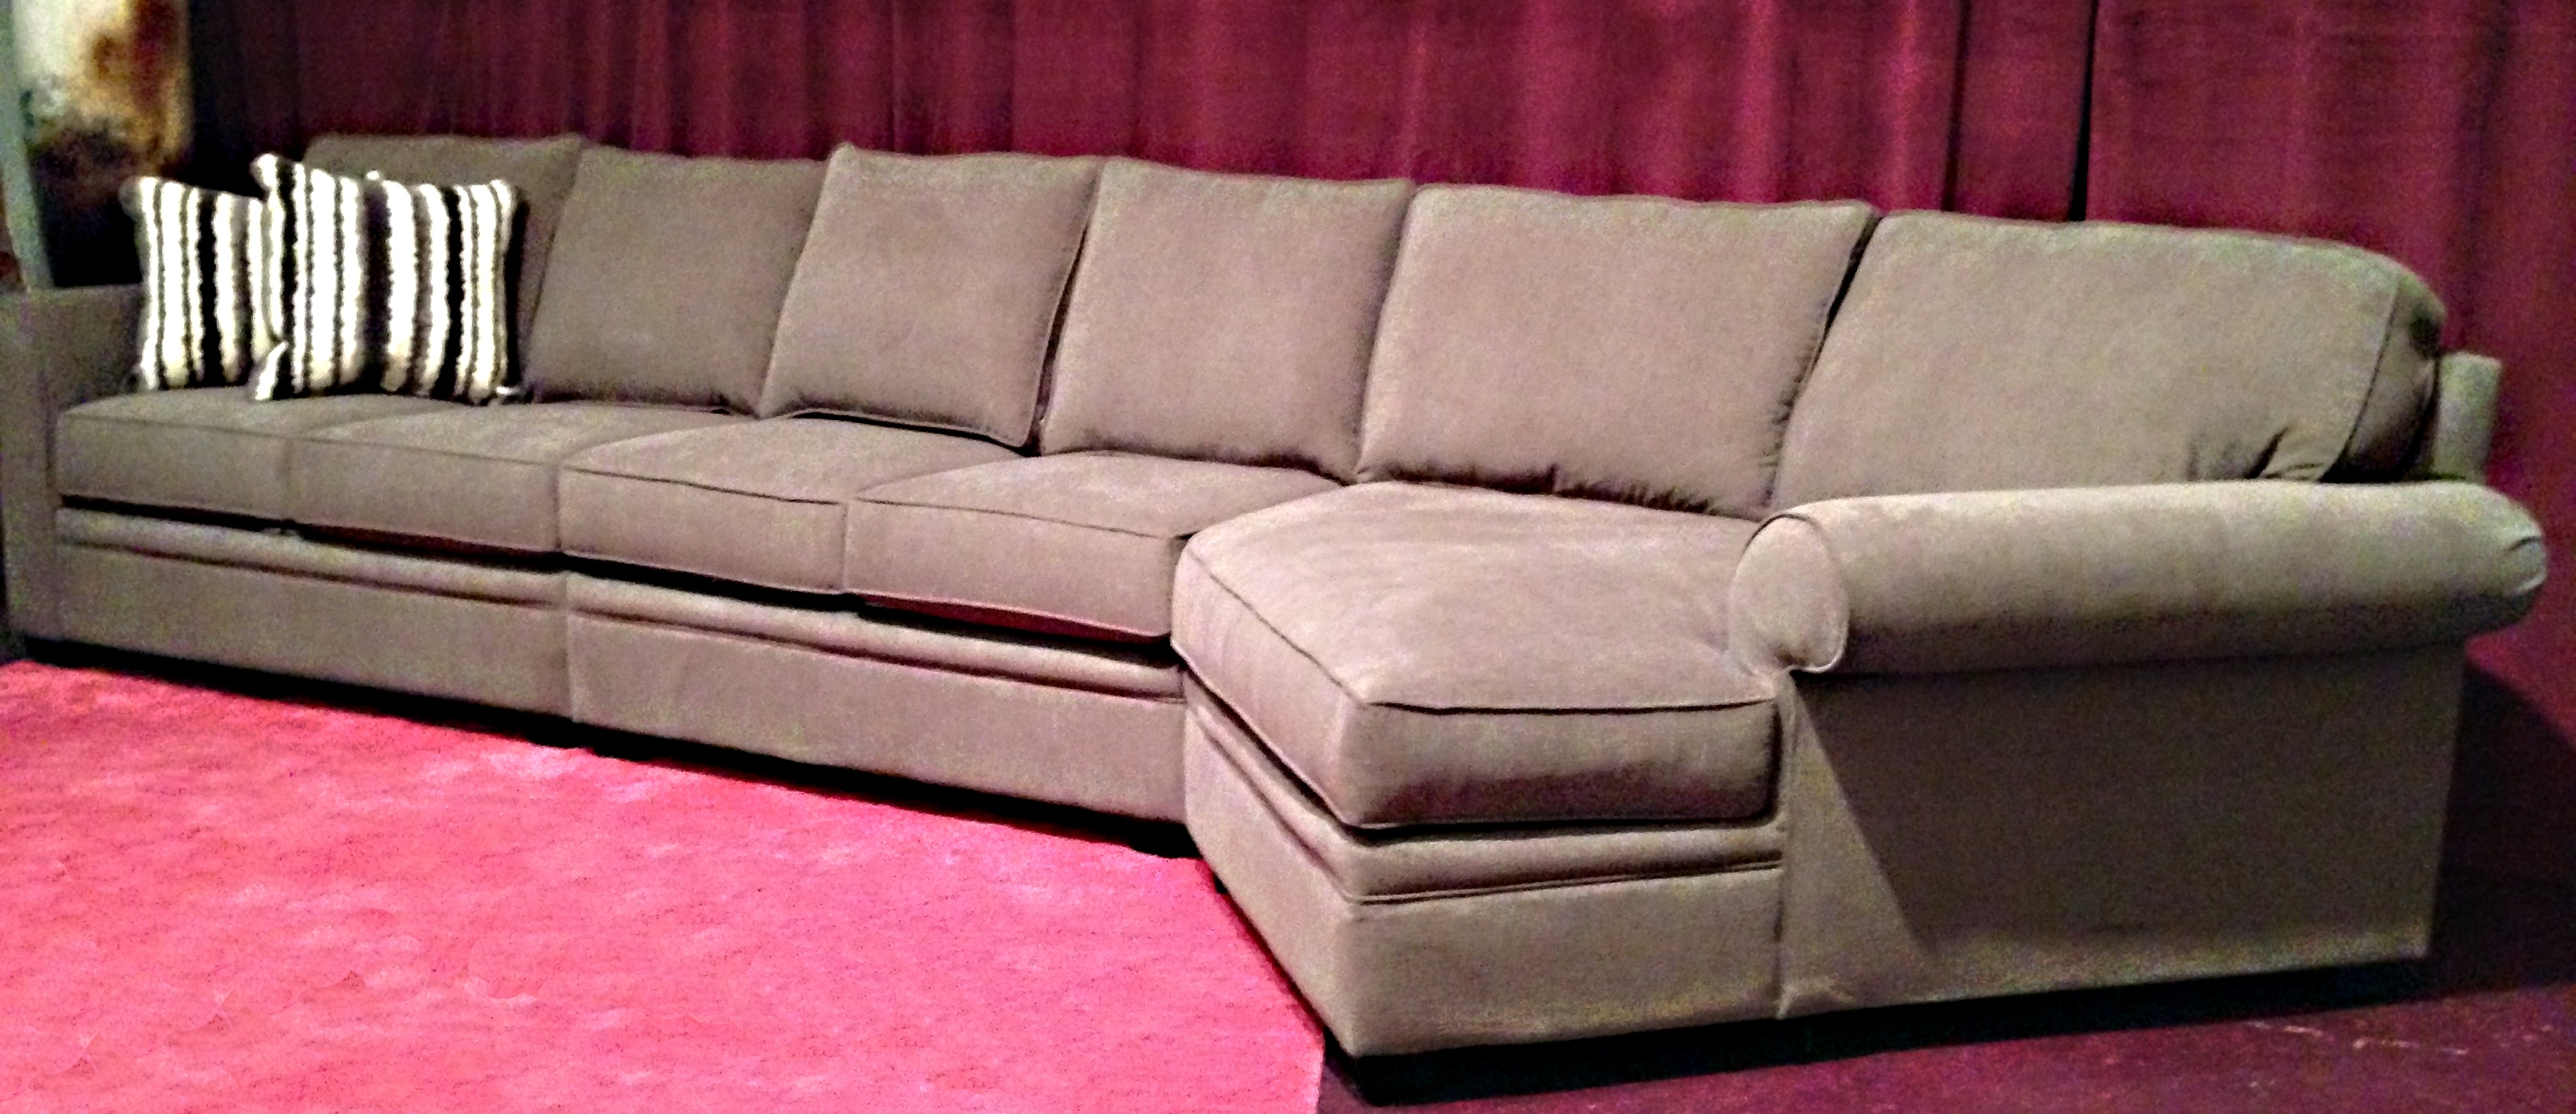 Long Couches With Chaise With 2017 Epic Cuddler Sofa 20 For Your Modern Sofa Ideas With Cuddler Sofa (View 8 of 15)